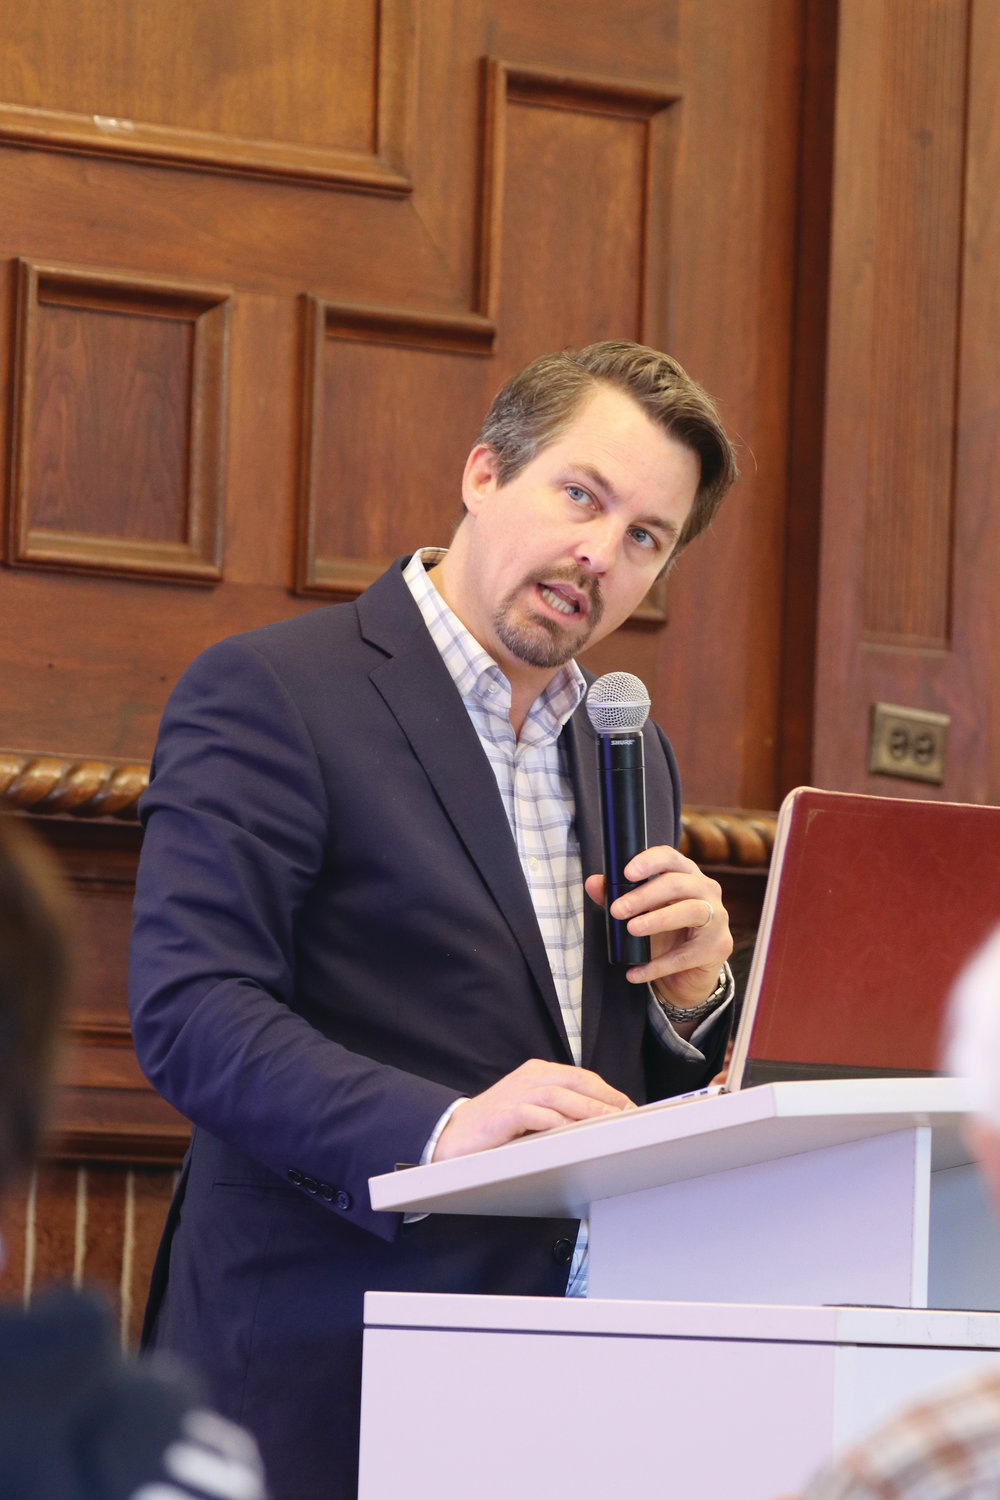 Dr. Chad Pecknold, associate professor of theology at Catholic University of America, offers his presentation during the first forum in the diocese's Caring for Creation series, held on Oct. 19 at Providence College.